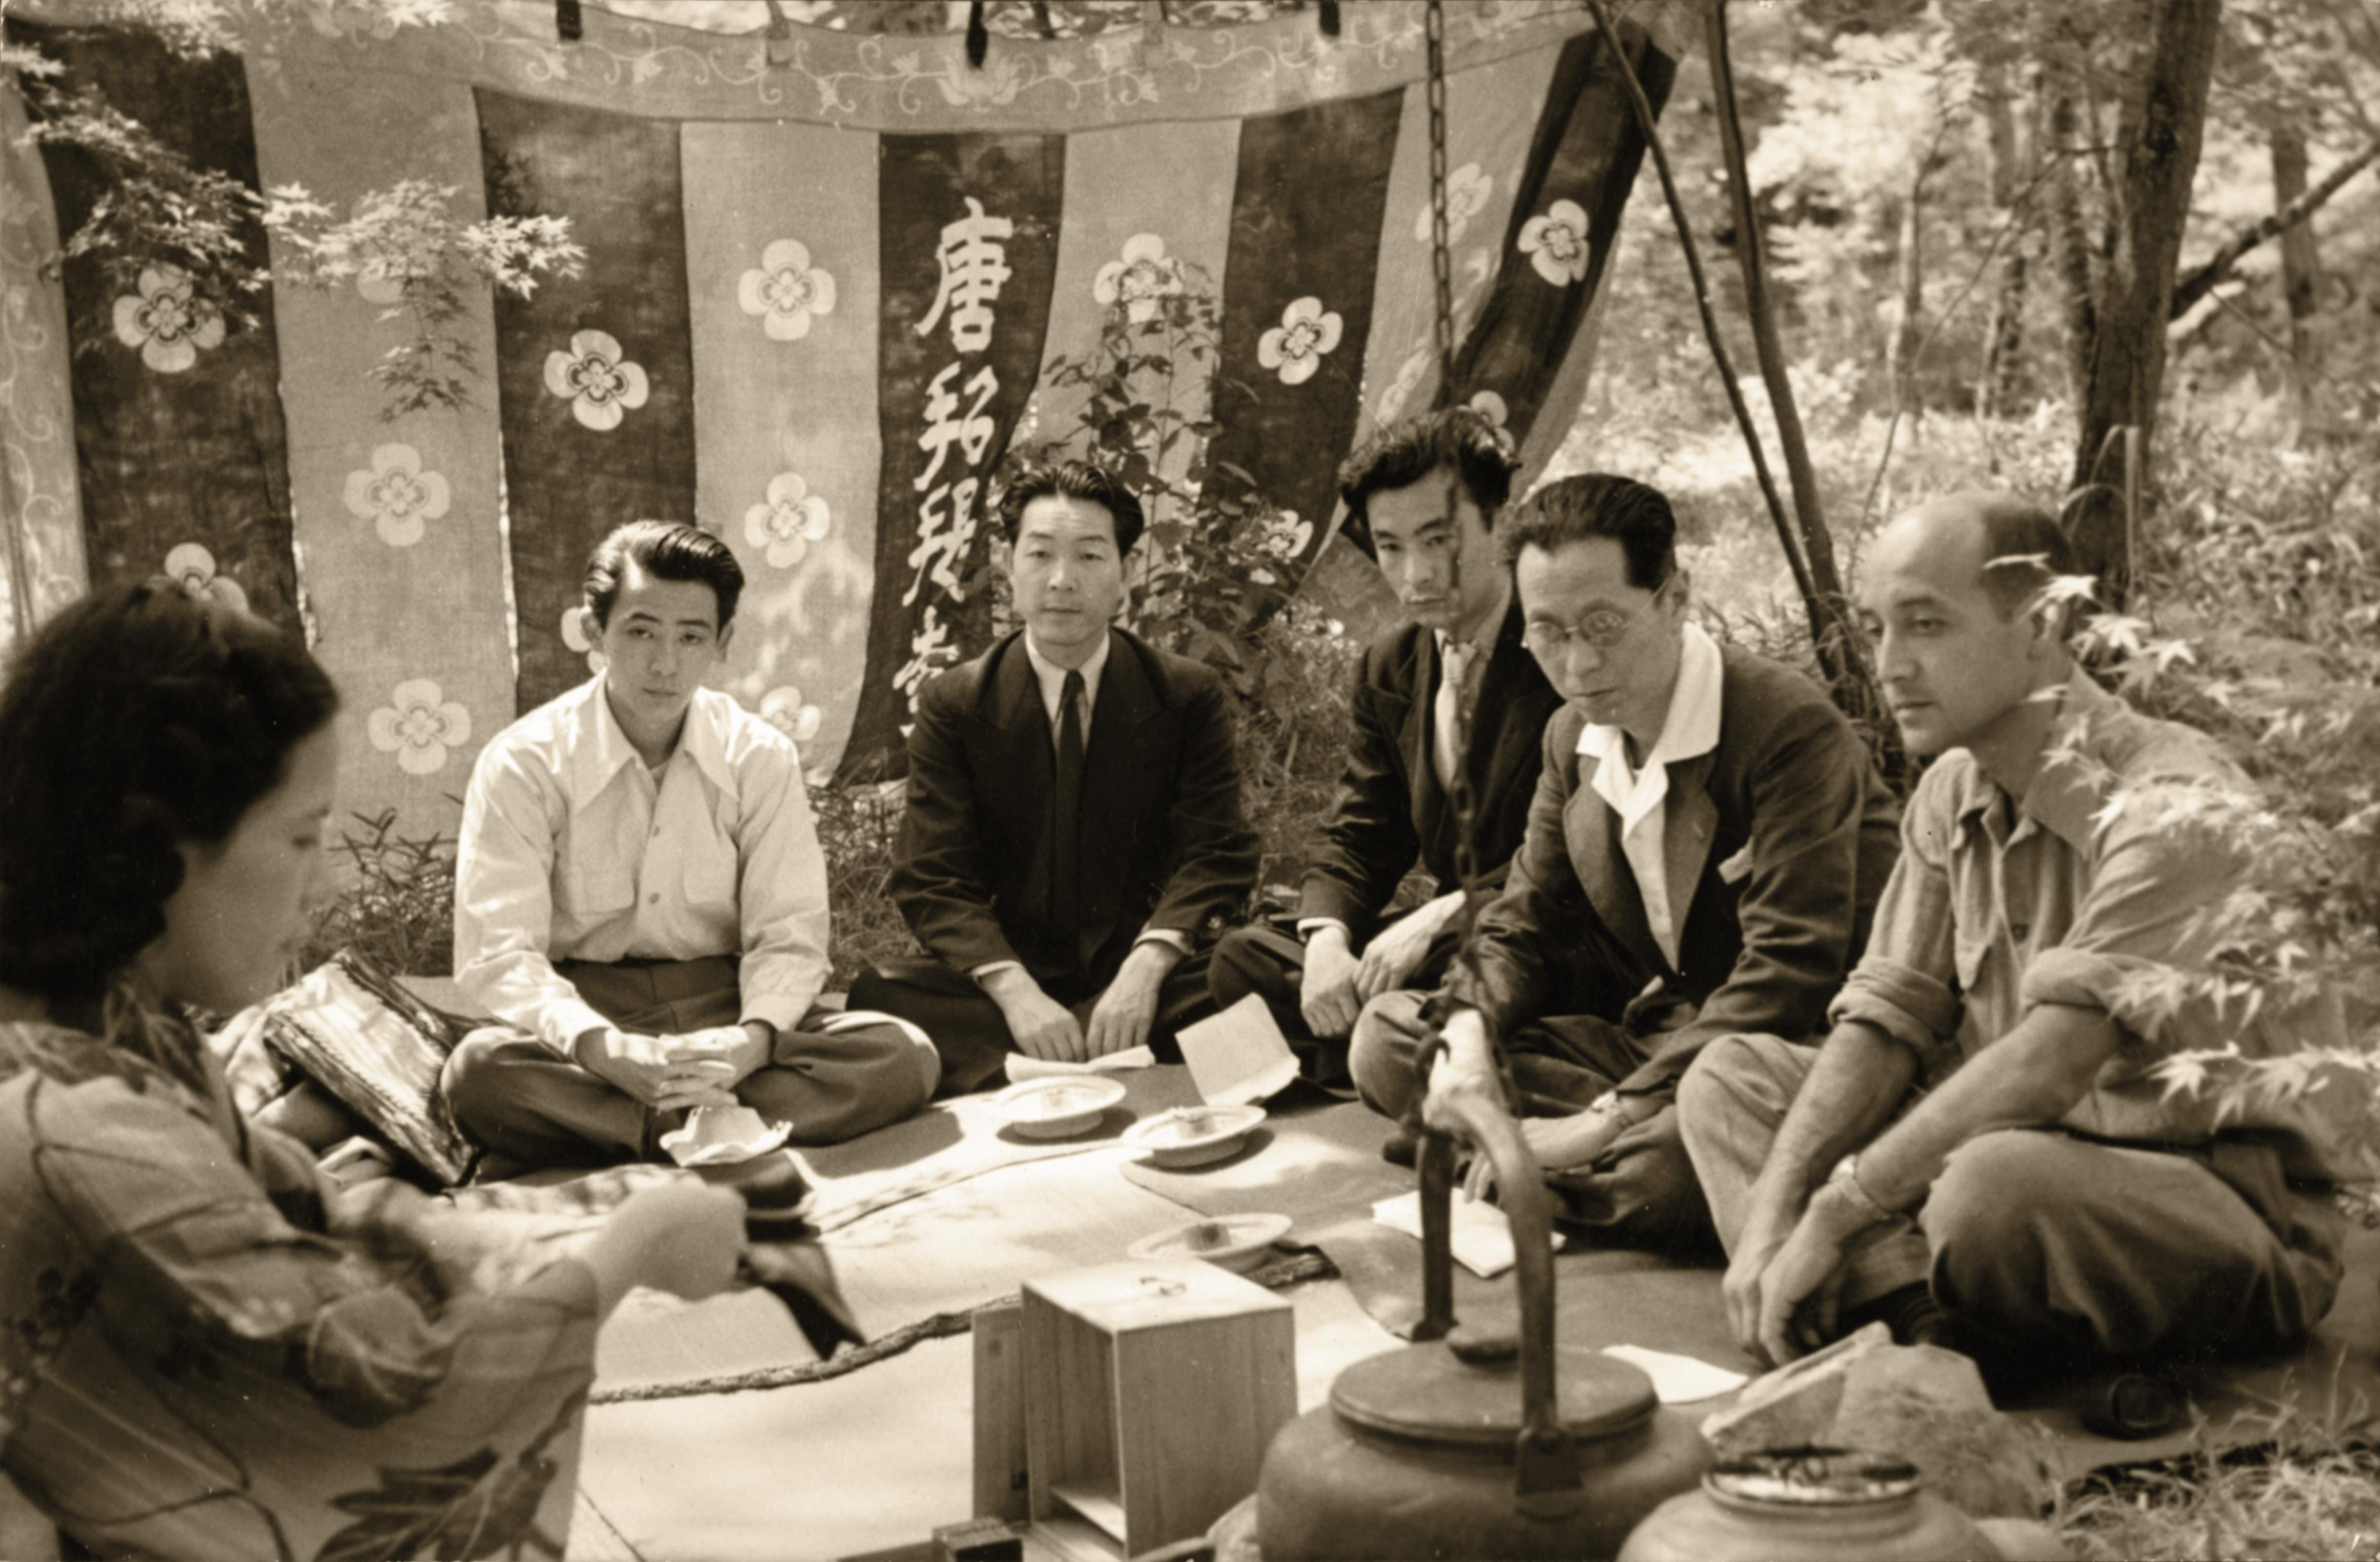 Isamu Noguchi in Nara with Saboro Hasegawa, Michio Noguchi, and other friends on his 1950 trip to Japan.